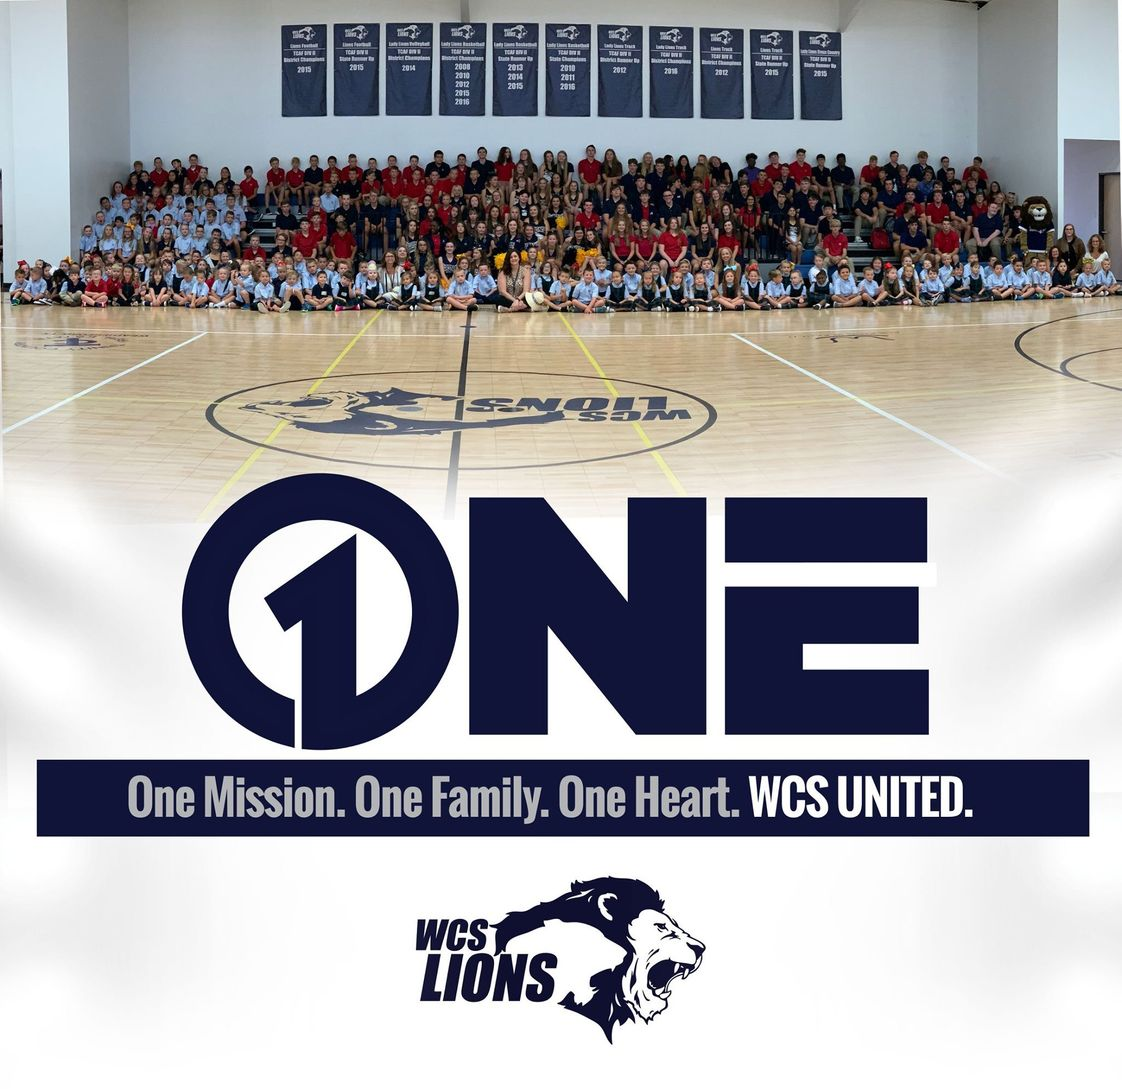 Weatherford Christian School Photo - One Mission. One Family. One Heart. WCS UNITED.